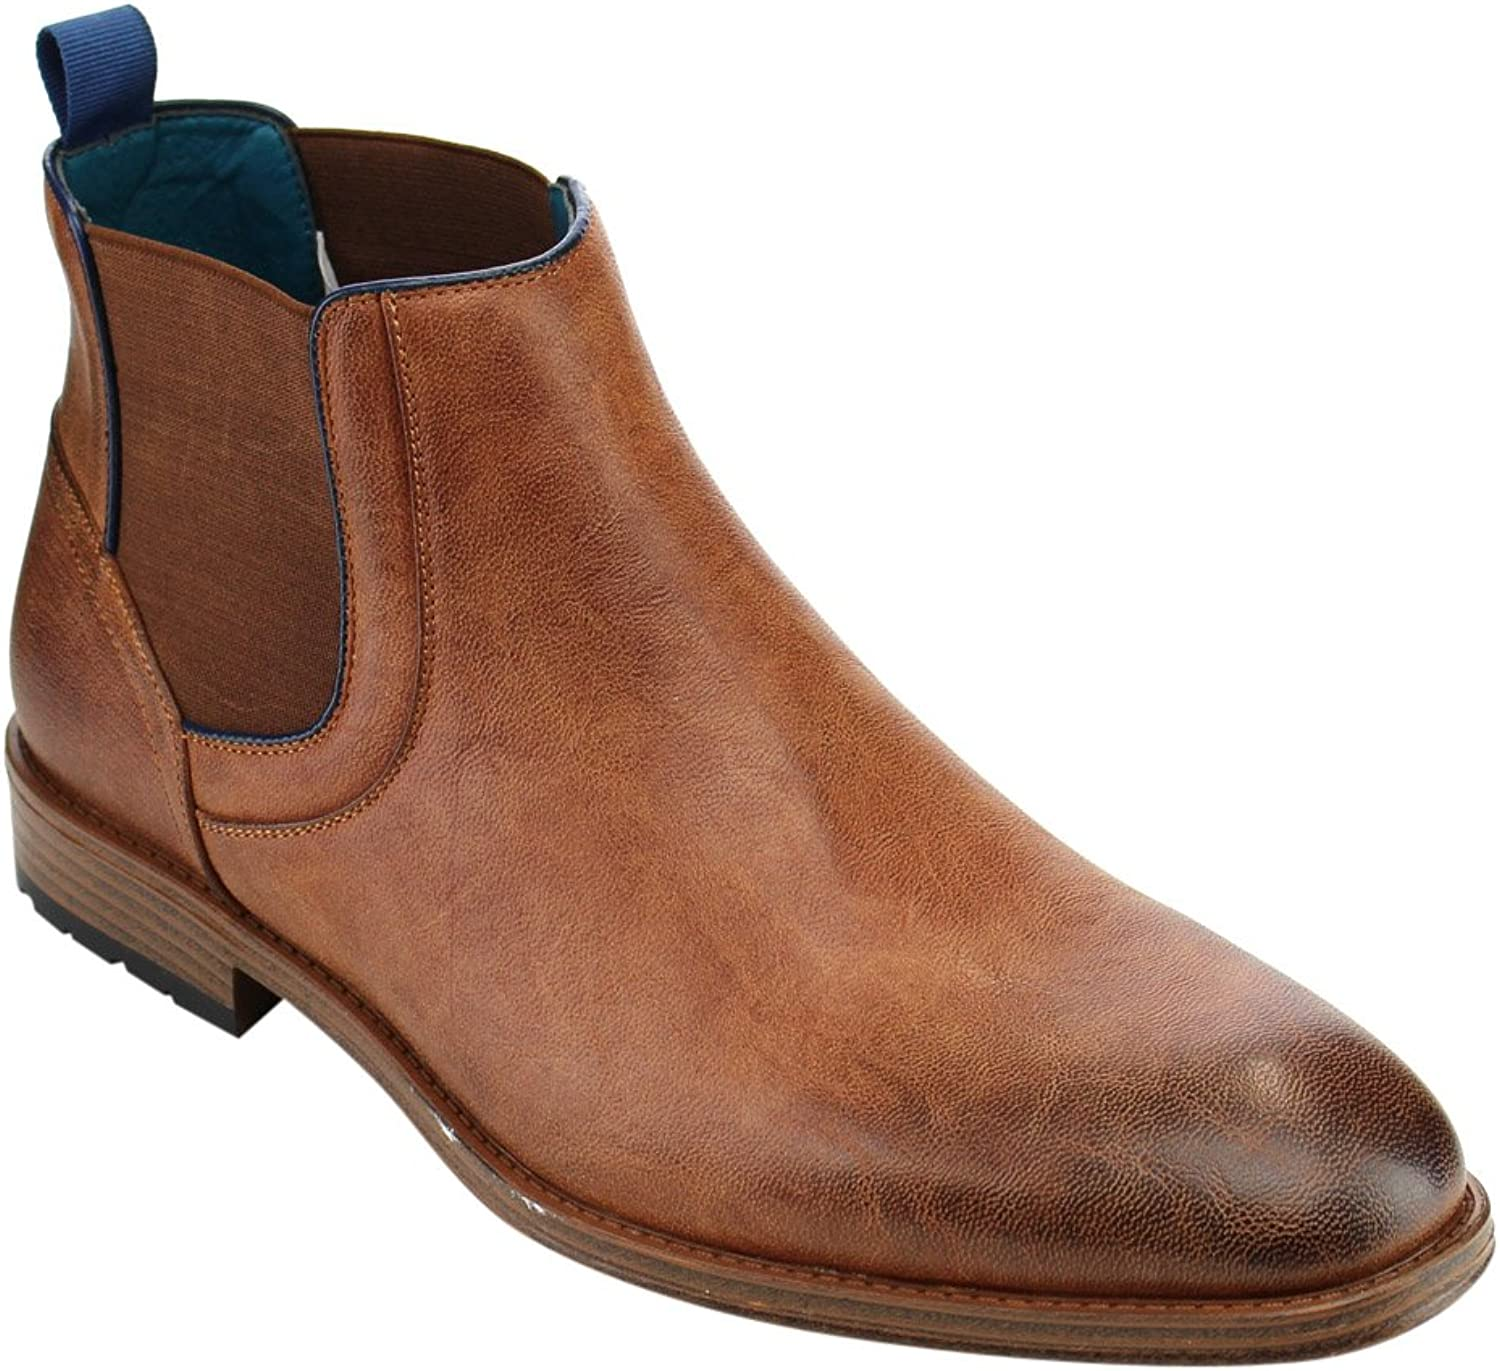 Arider AD07 Men's Pull On Elastic Ankle Boots